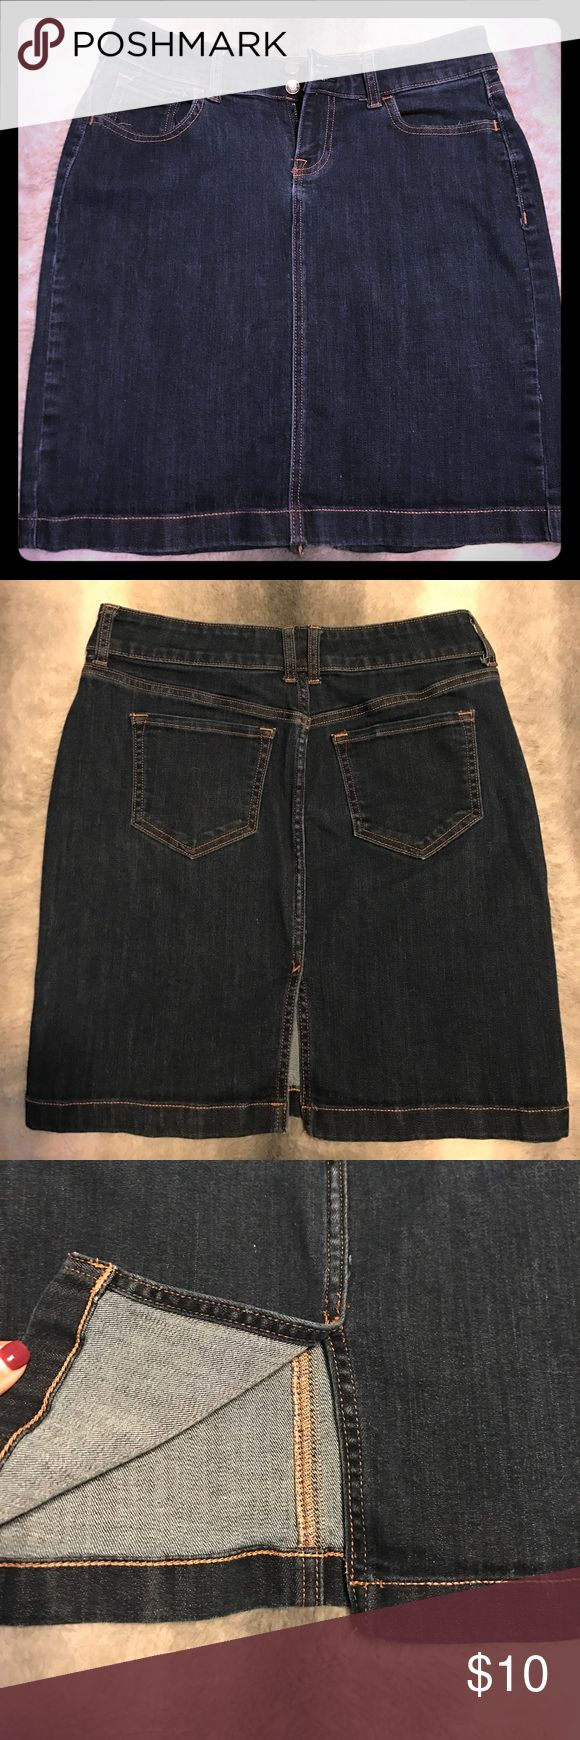 Old Navy short dark wash denim pencil skirt This dark wash denim skirt hits above the knee. It has a centered back slit and features pockets on the front and back. There are belt loops and a two button closure with a front zipper. Old Navy Skirts Pencil